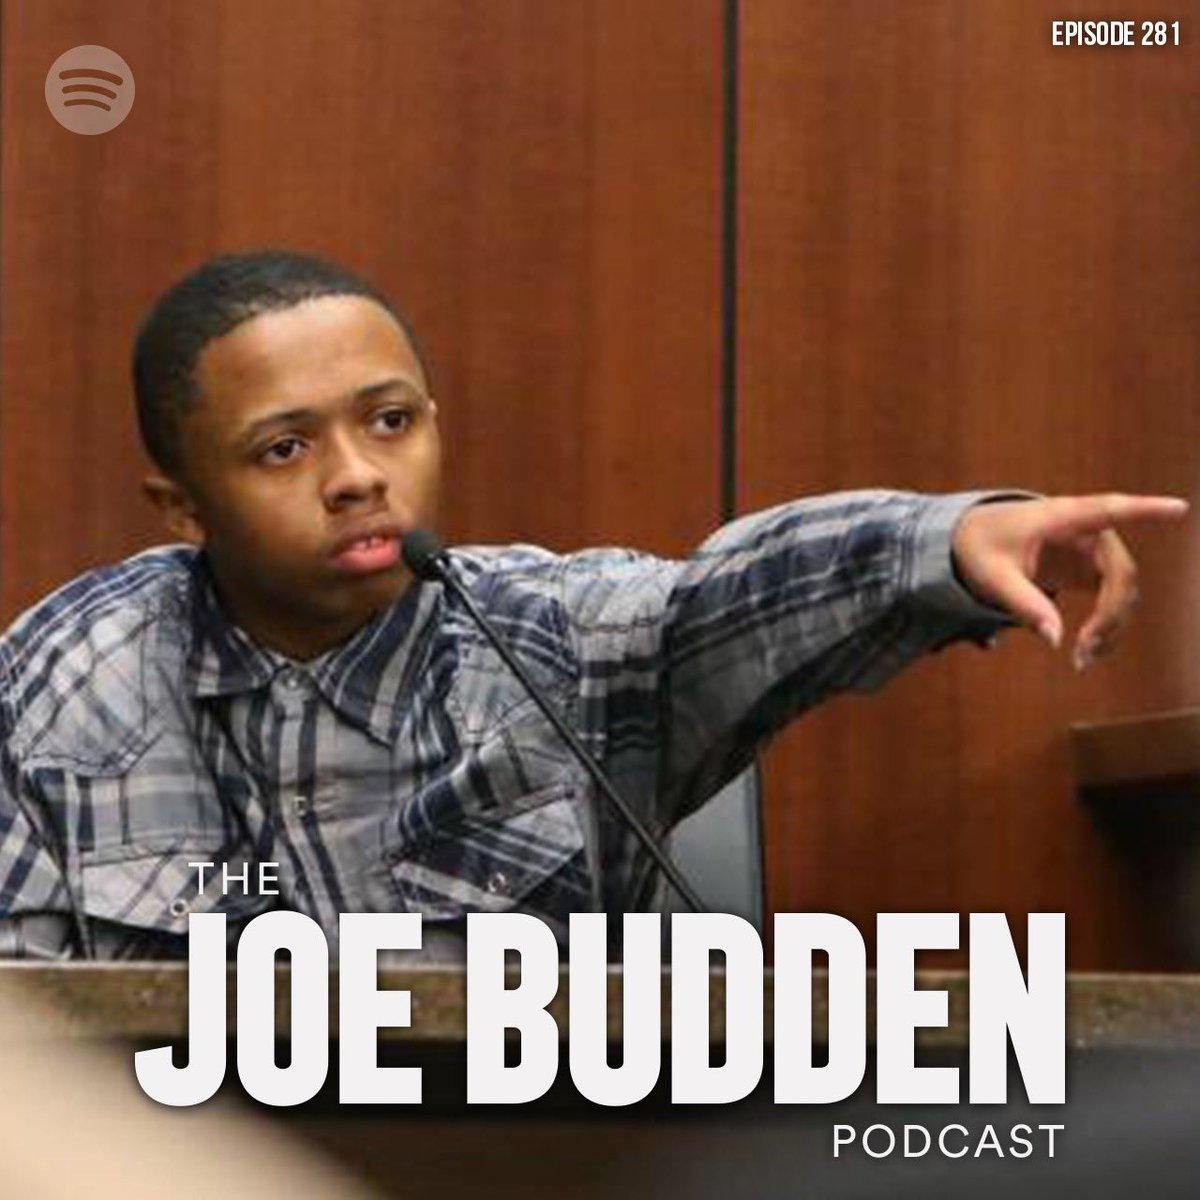 "The @JoeBudden Podcast Episode 281 ""Danny Dimes"" is available now!Stream exclusively on @SpotifyLISTEN HERE 🎧: https://open.spotify.com/episode/4ItM0jUREFXkDLddJOUHSW?si=Vv3wmdgUR_iVrkJ5qaHg6w …"